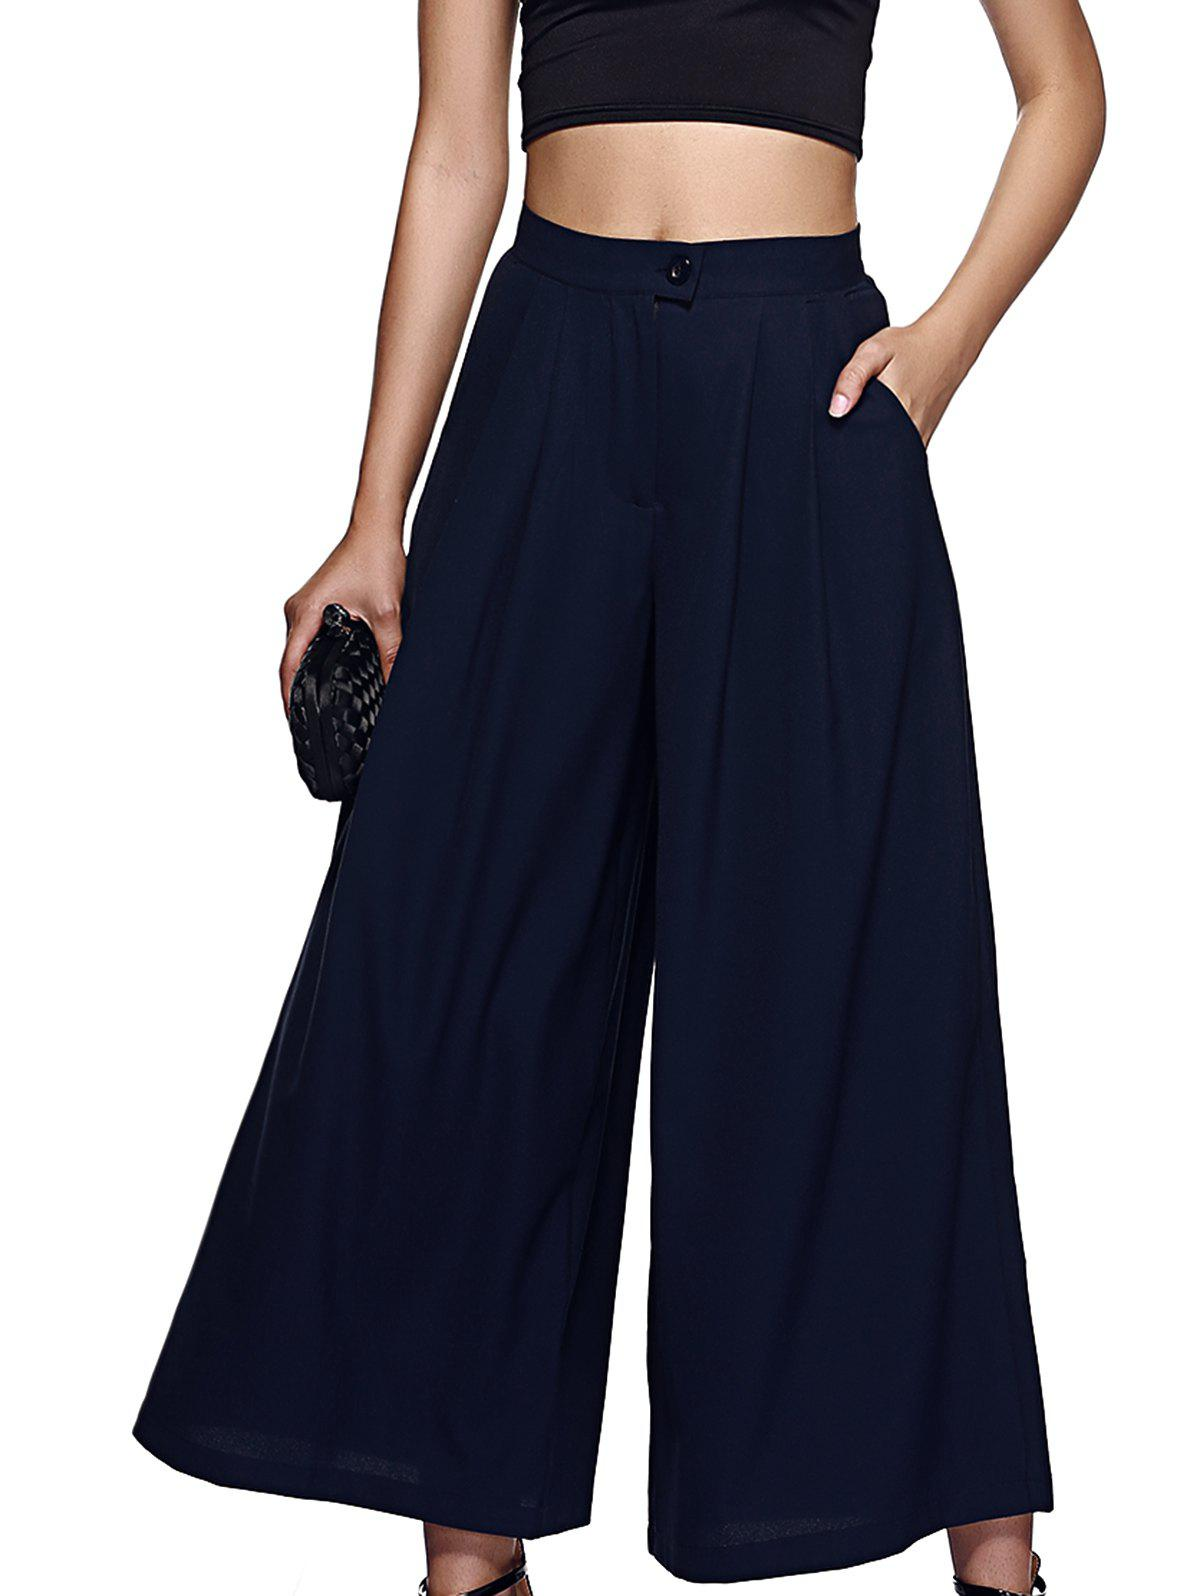 Stylish High-Waisted Solid Color Palazzo For Women - PURPLISH BLUE L